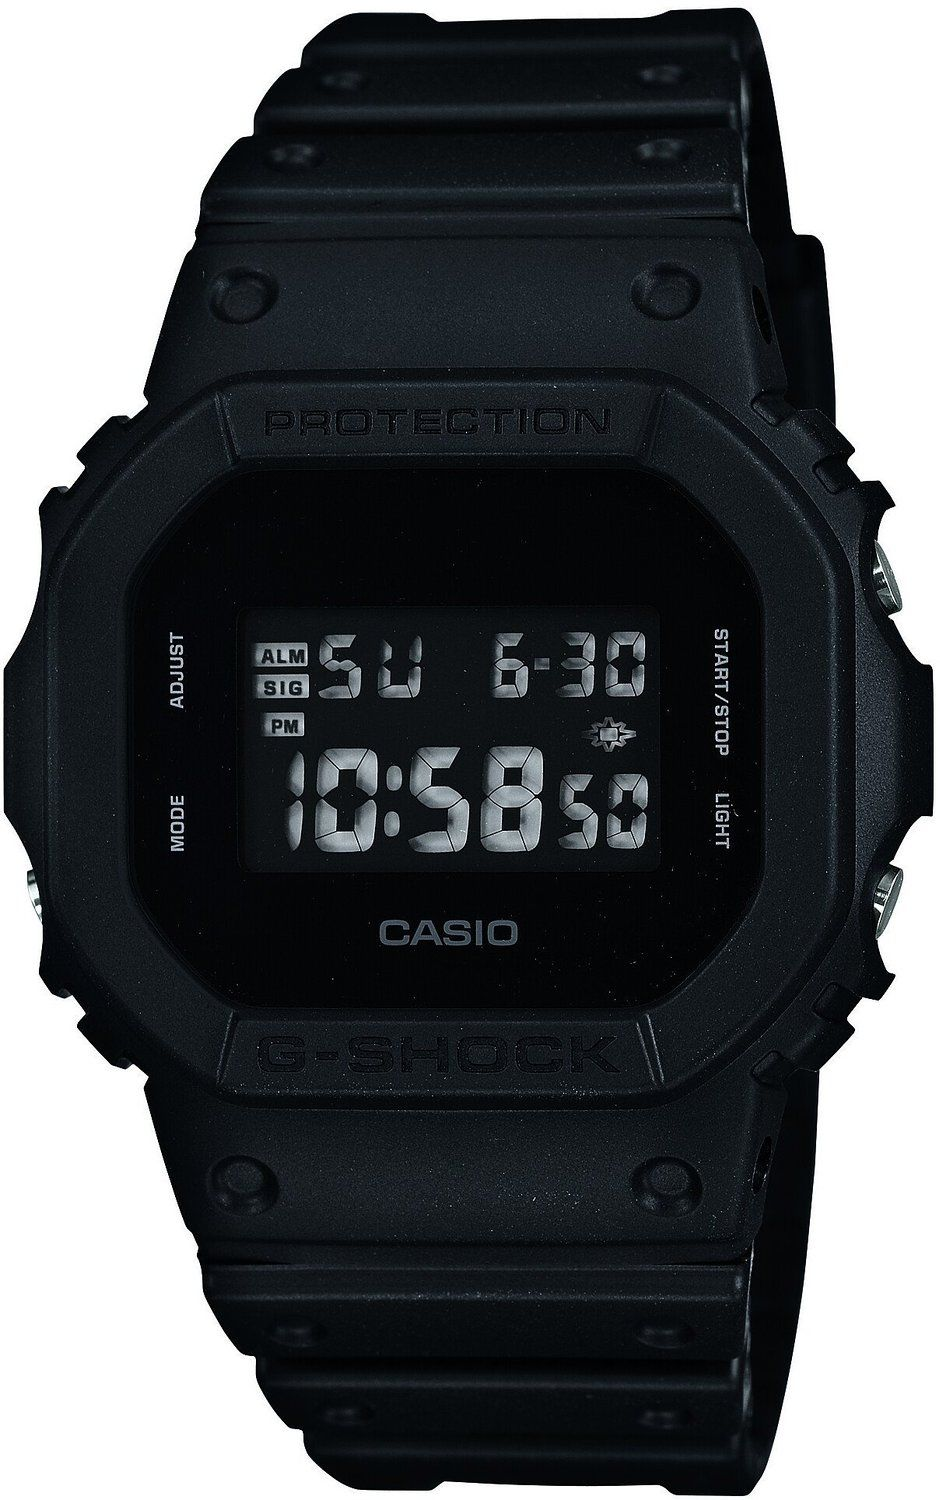 Casio GShock Solid Colors Men's Watch (Limited Casio g